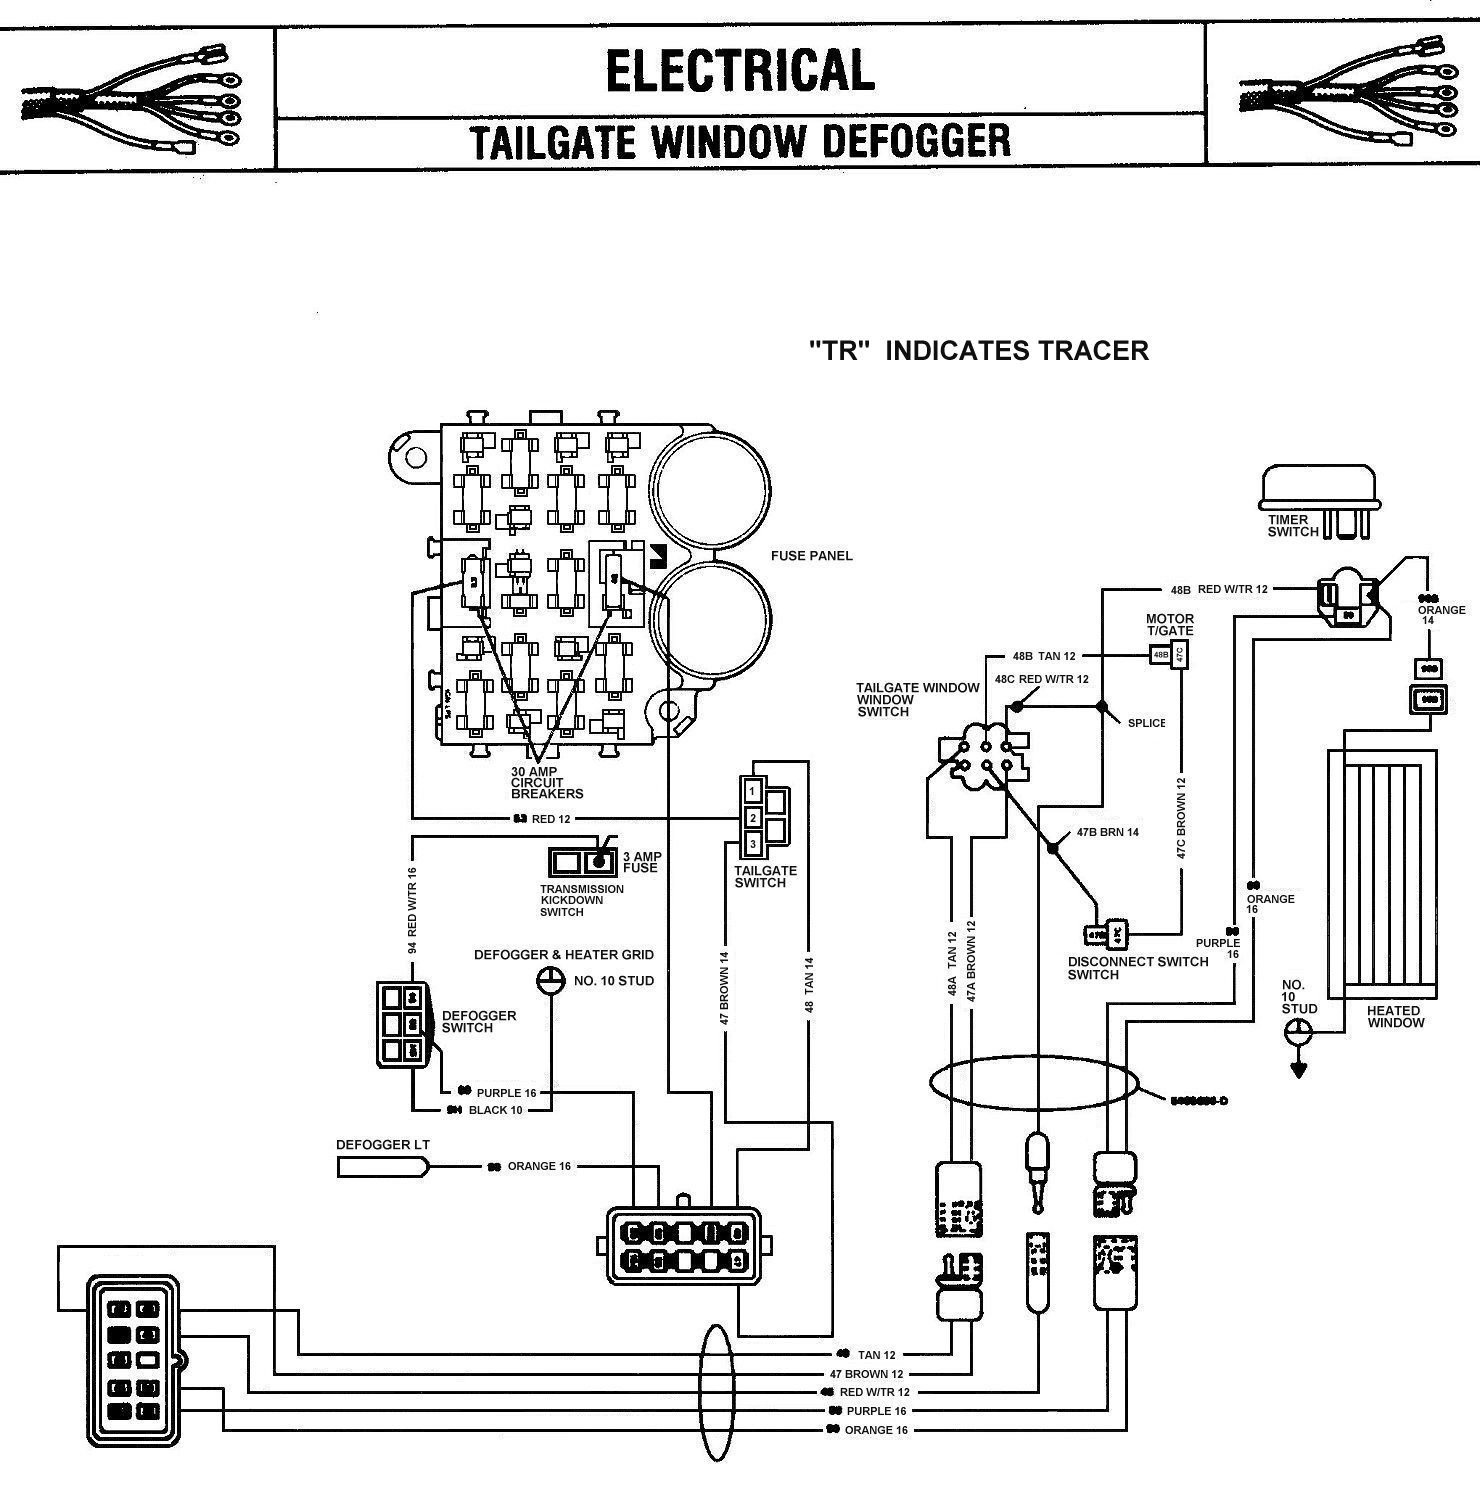 Tom 'oljeep' Collins Fsj Wiring Page 1987 Jeep Cherokee Wiring Diagram 1983 Jeep  Cherokee Wiring Diagram